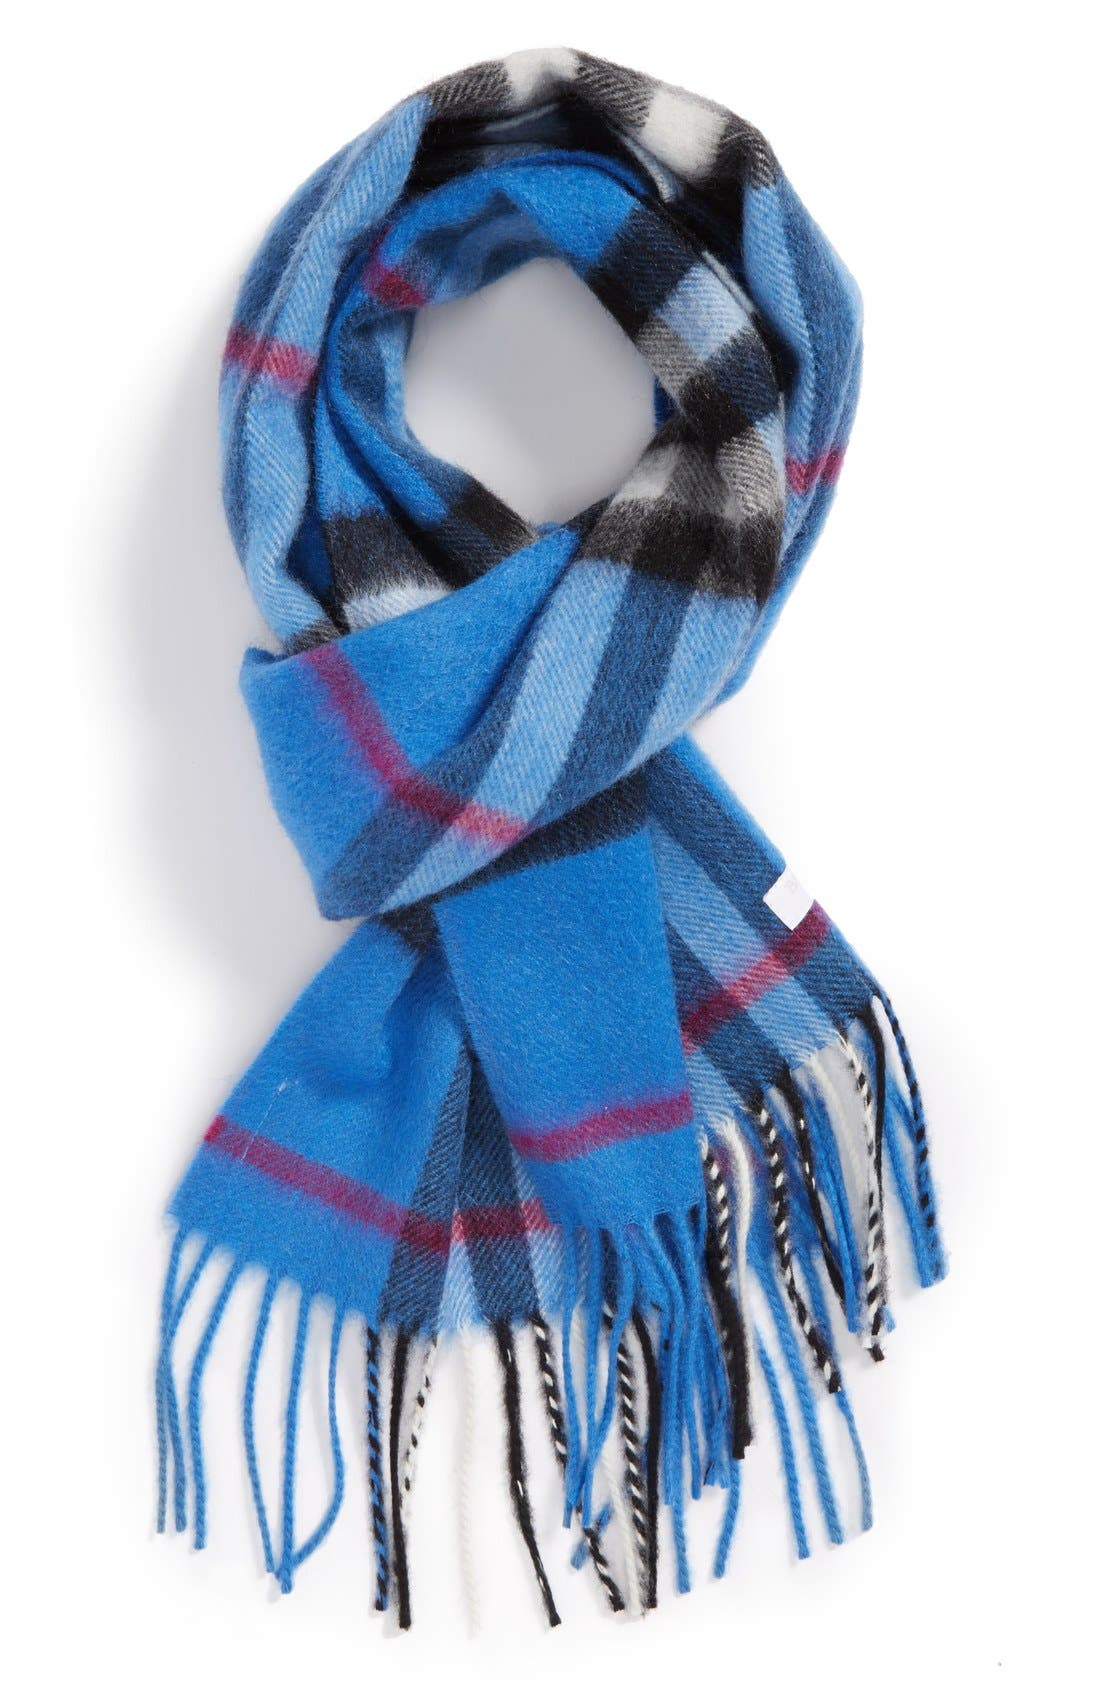 Alternate Image 1 Selected - Burberry 'Scotland' Check Cashmere Scarf (Girls)